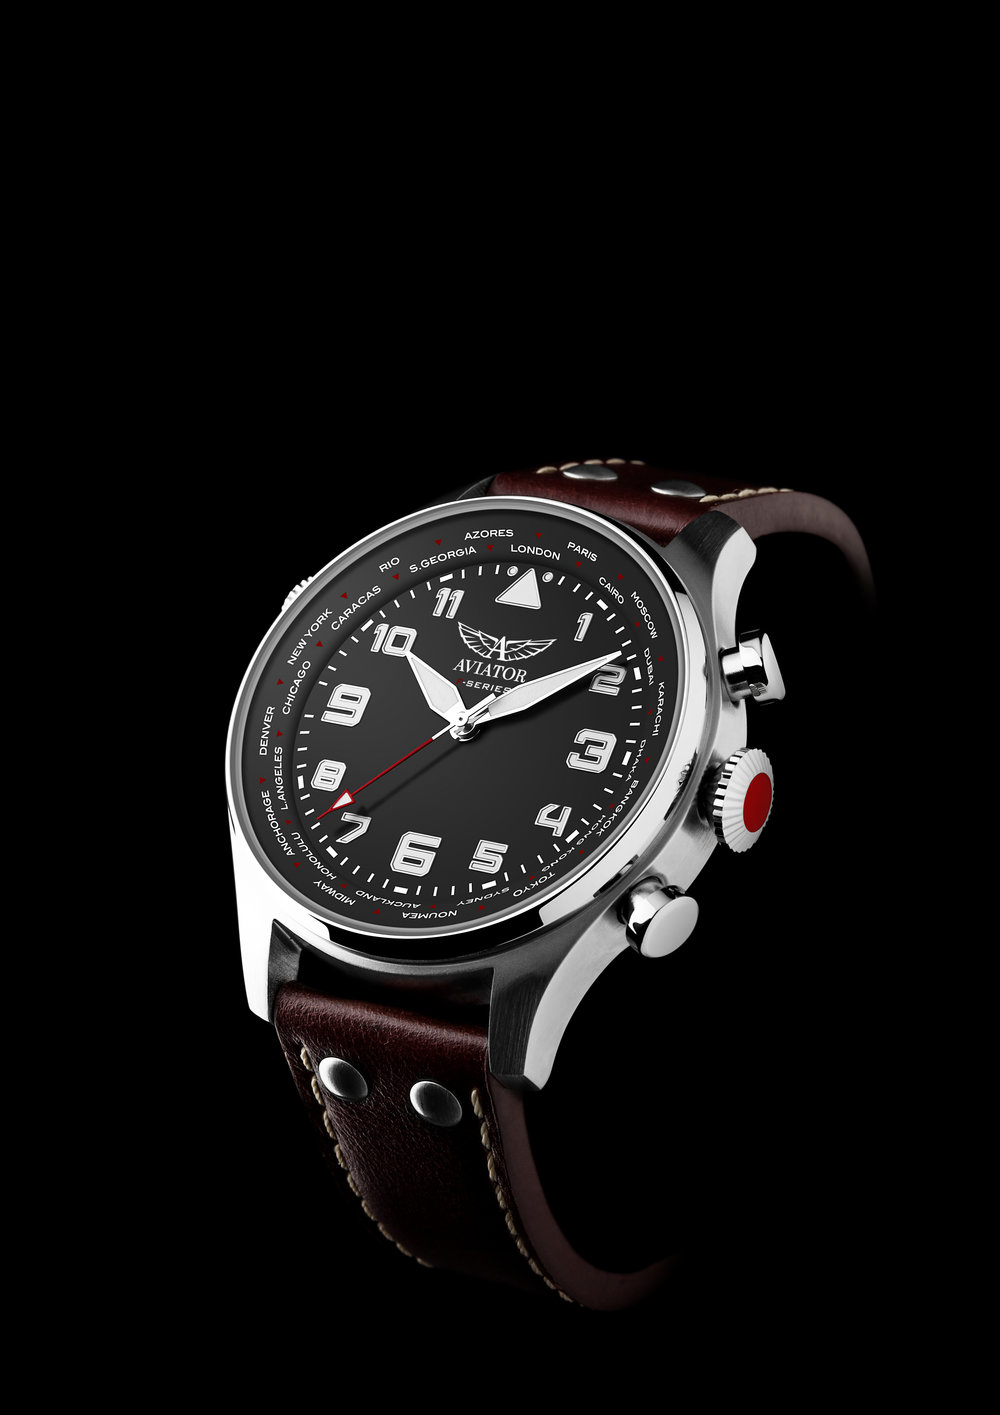 aviator-smart-watch_launch_scorpio-worldwide_travel-retail-distributor